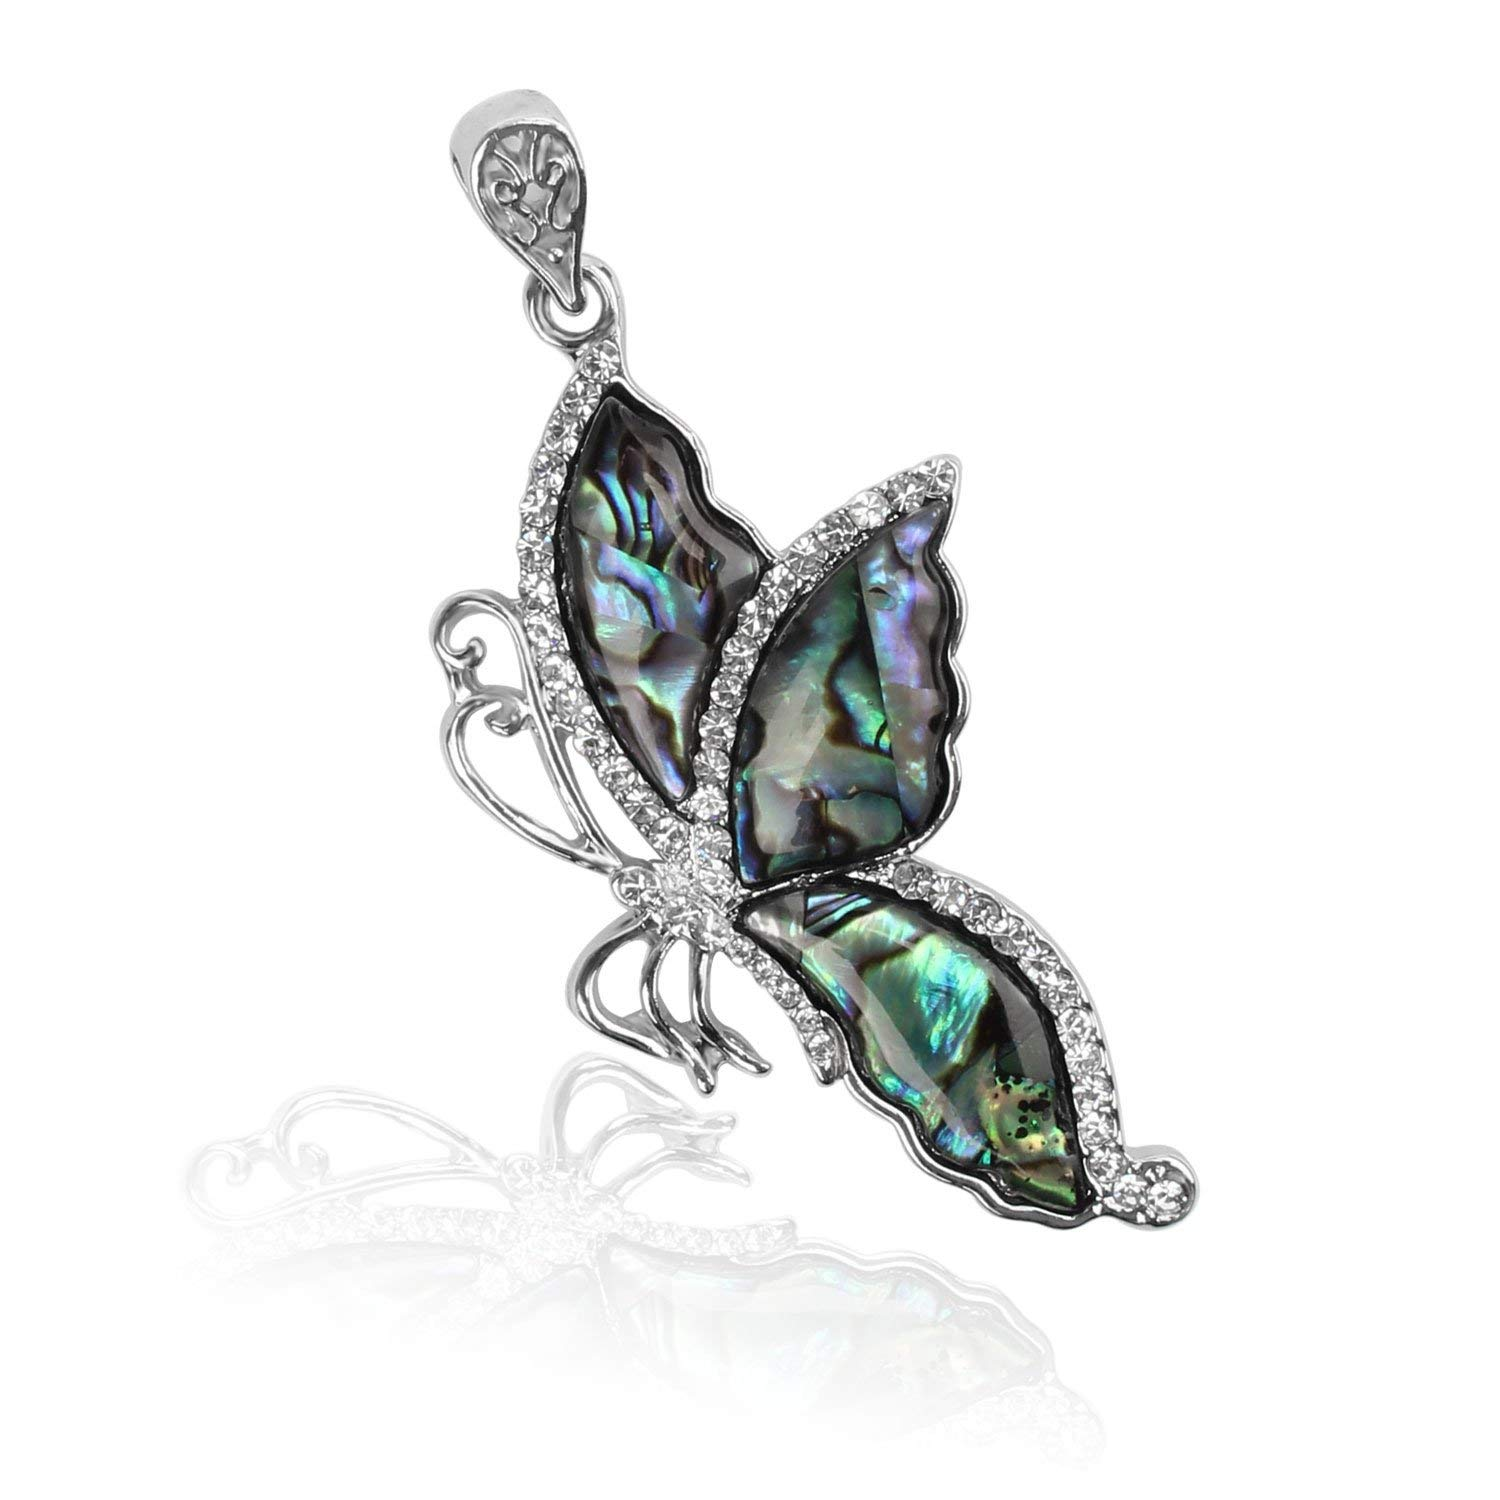 Wholesale 3 PCS Butterfly Shaped Charm Natural Abalone Shell Pendant with Silver Tone Pattern Bulk Charm for Jewelry Making